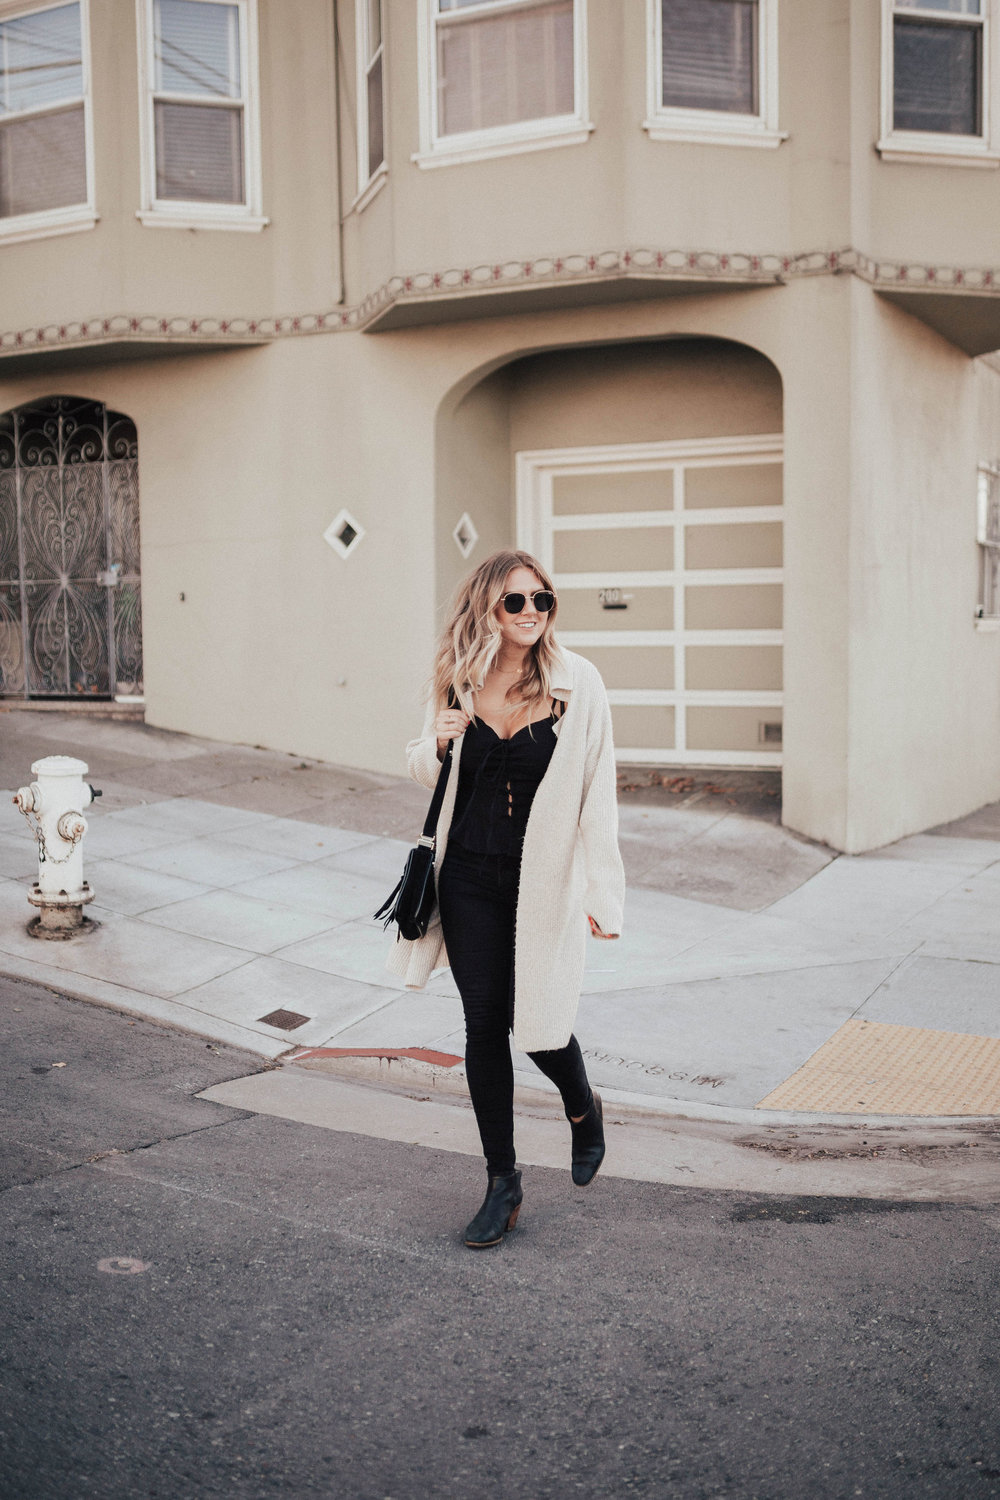 via Thea: Sweater, Free people top, old navy jeans, rachel comey boots, rebecca minkoff bag, katie dean necklace, quay sunnies